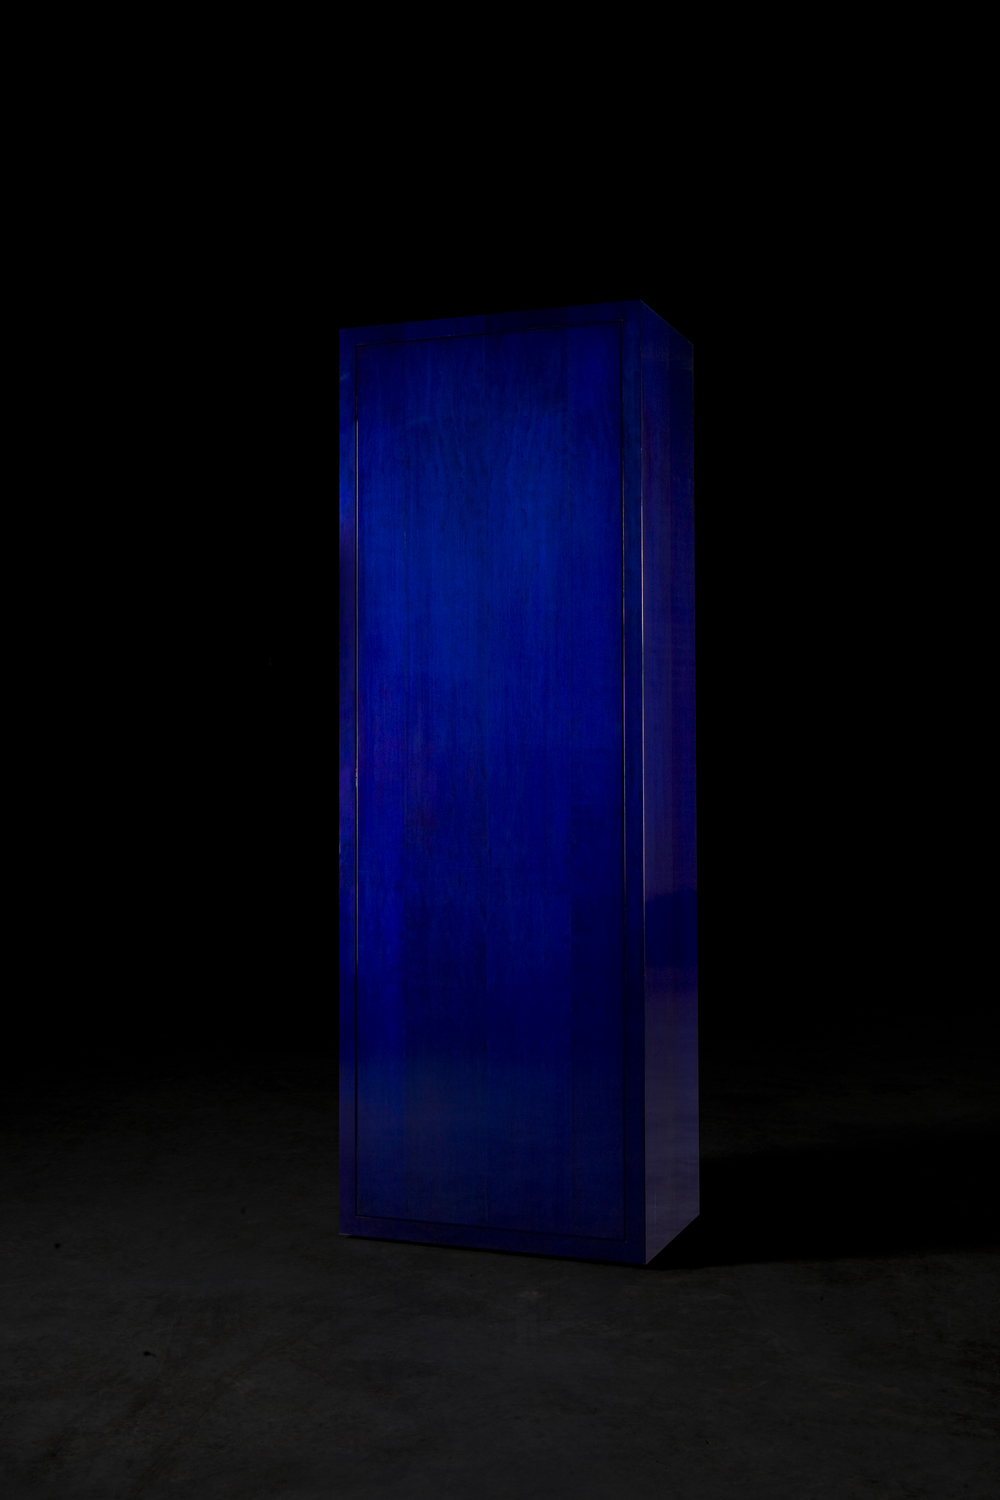 BiC Blue   Year : 2009  Materials : American maple veneer, BiC ink, French polish  Dimensions : 200 x 70 x 43 cm  Award : Winner of the Wallpaper Design Awards 2010 for the Best Use of Color